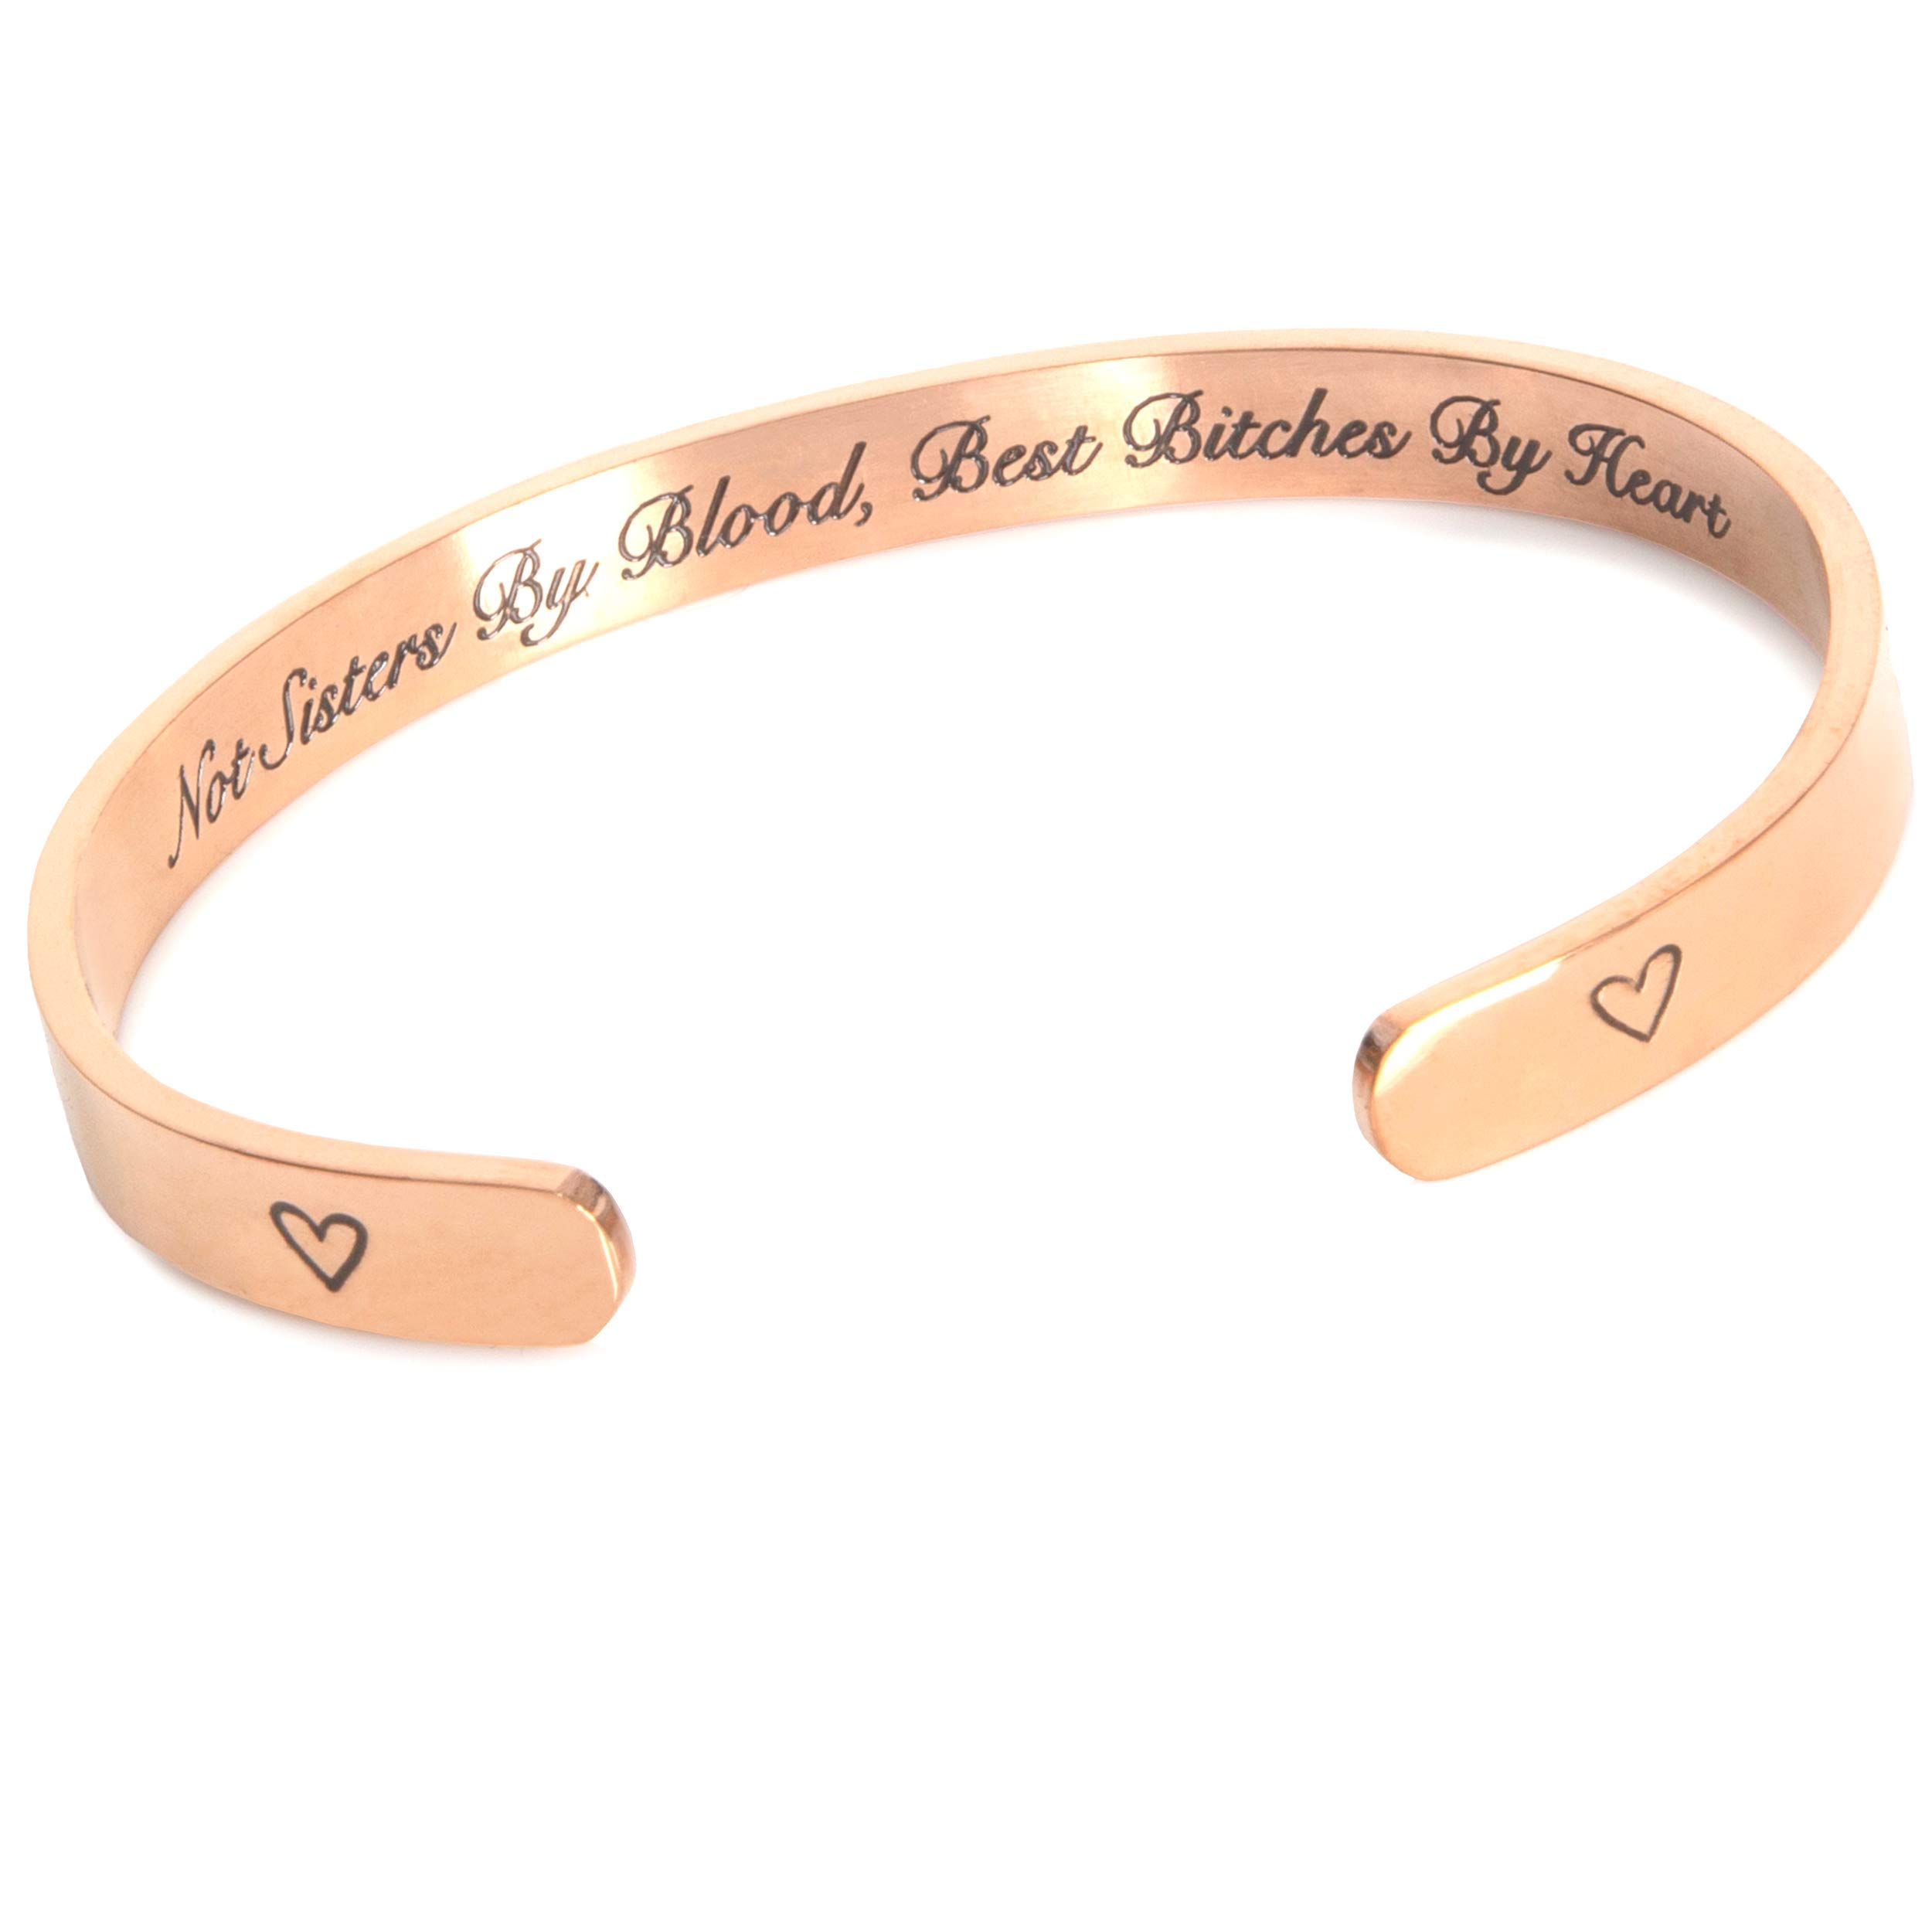 Bachelorette Party Bracelet, Bridesmaids, Maid of Honor, Birthday Gift (Not Sisters by Blood, Best Bitches by Heart)